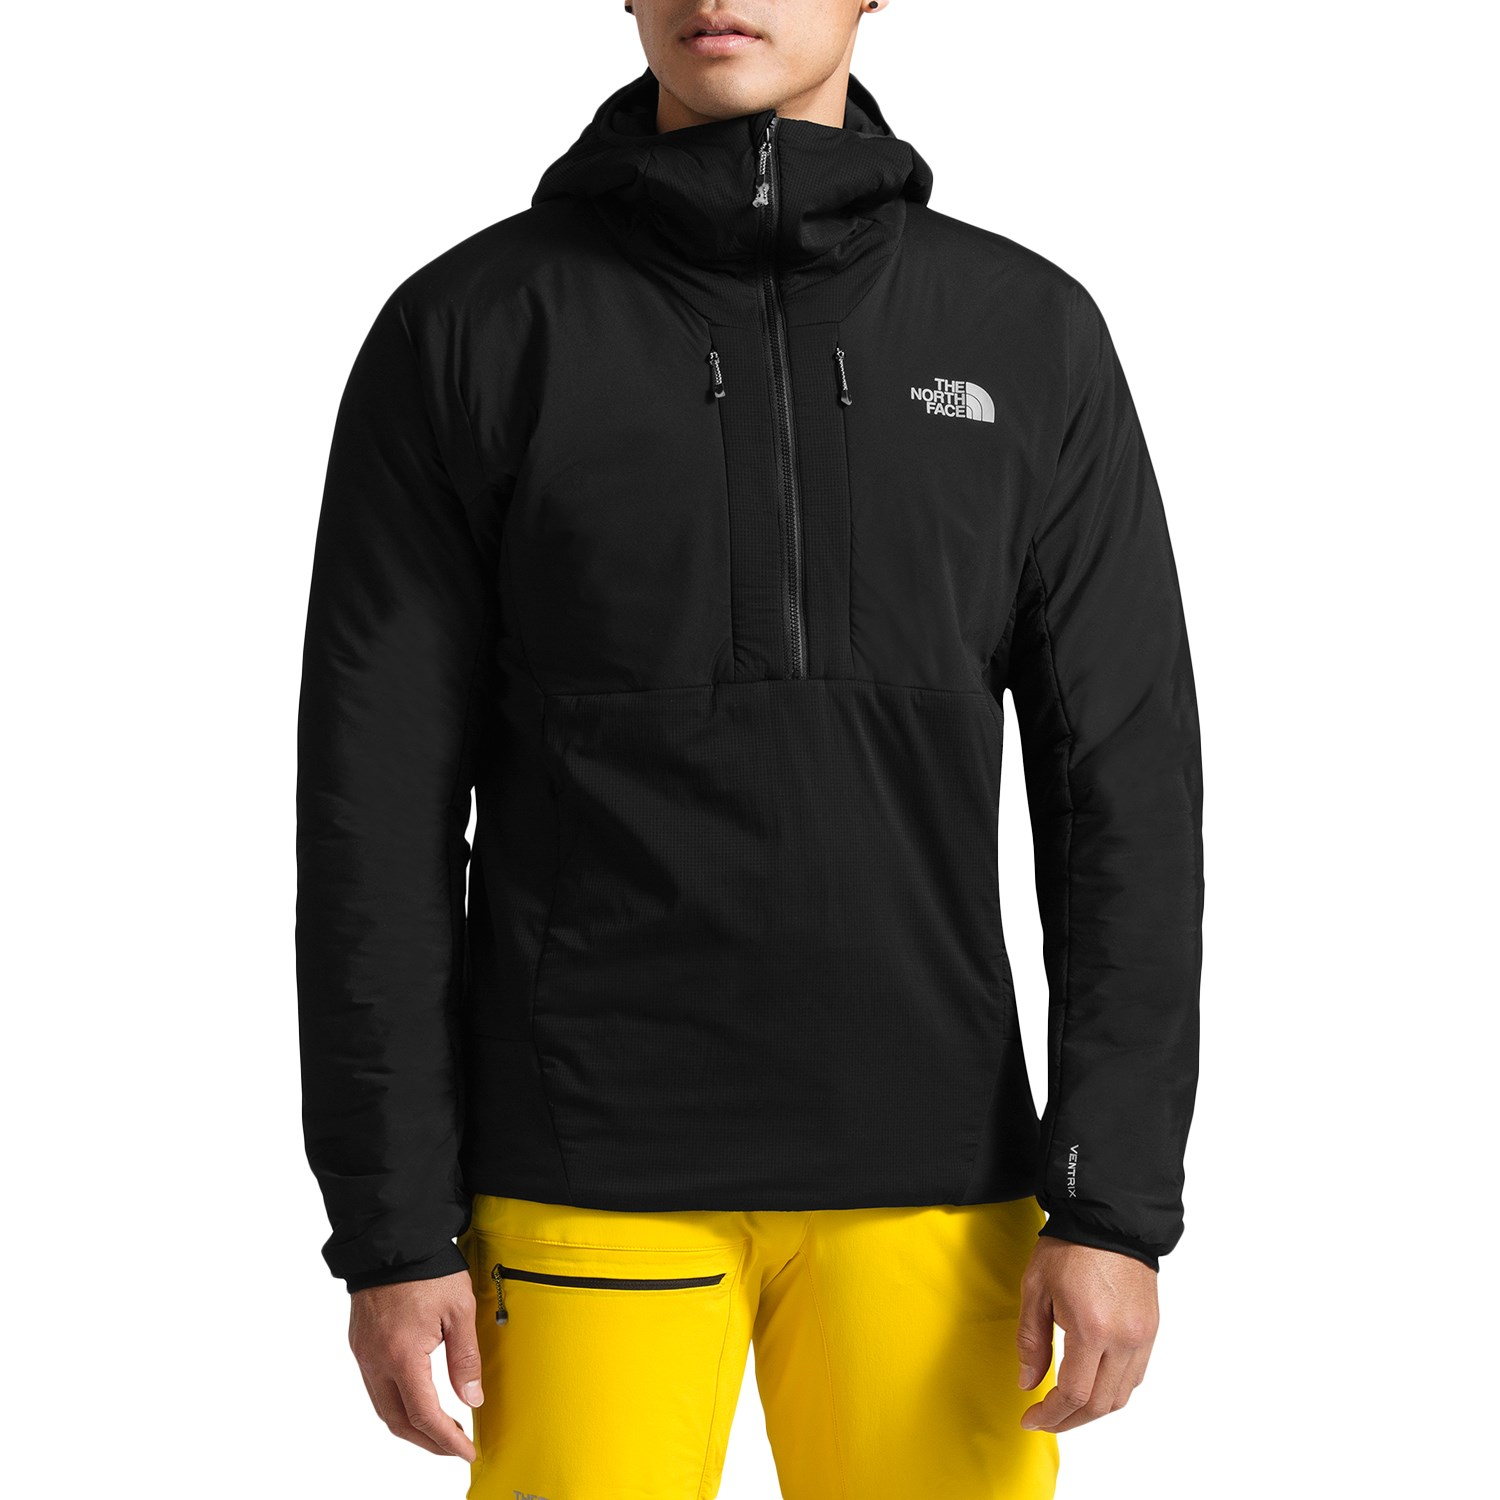 a4743dc59 The North Face Summit L3 Ventrix™ 1/2 Zip Hoodie